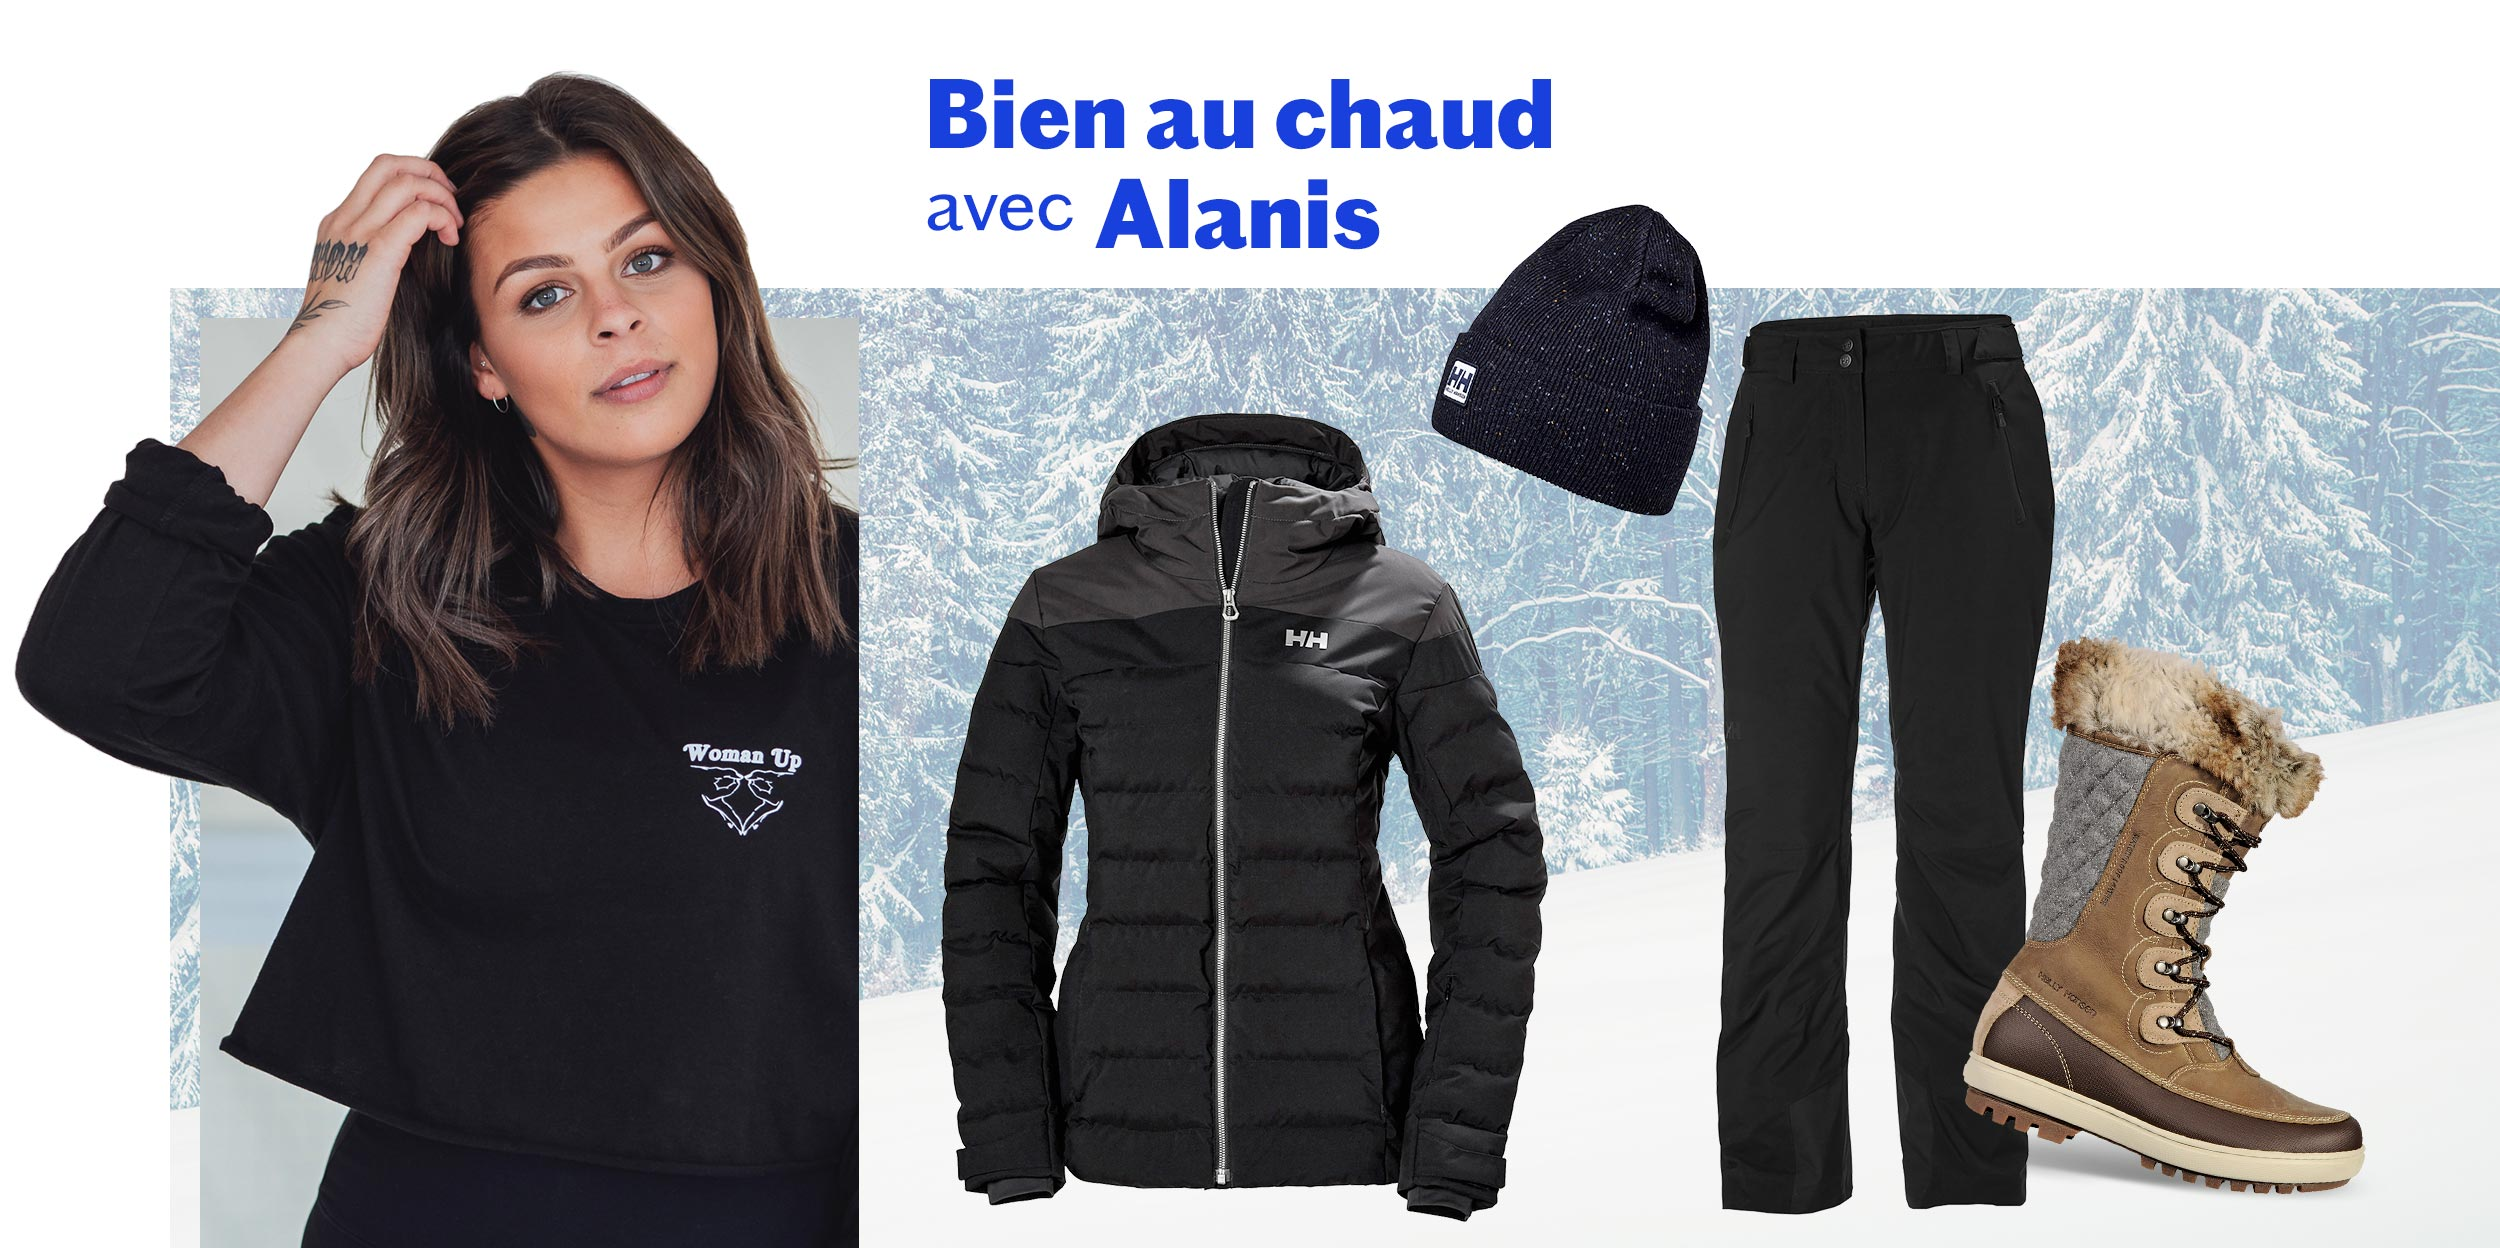 Bien au chaud avec Alanis - Influenceur Sports Experts